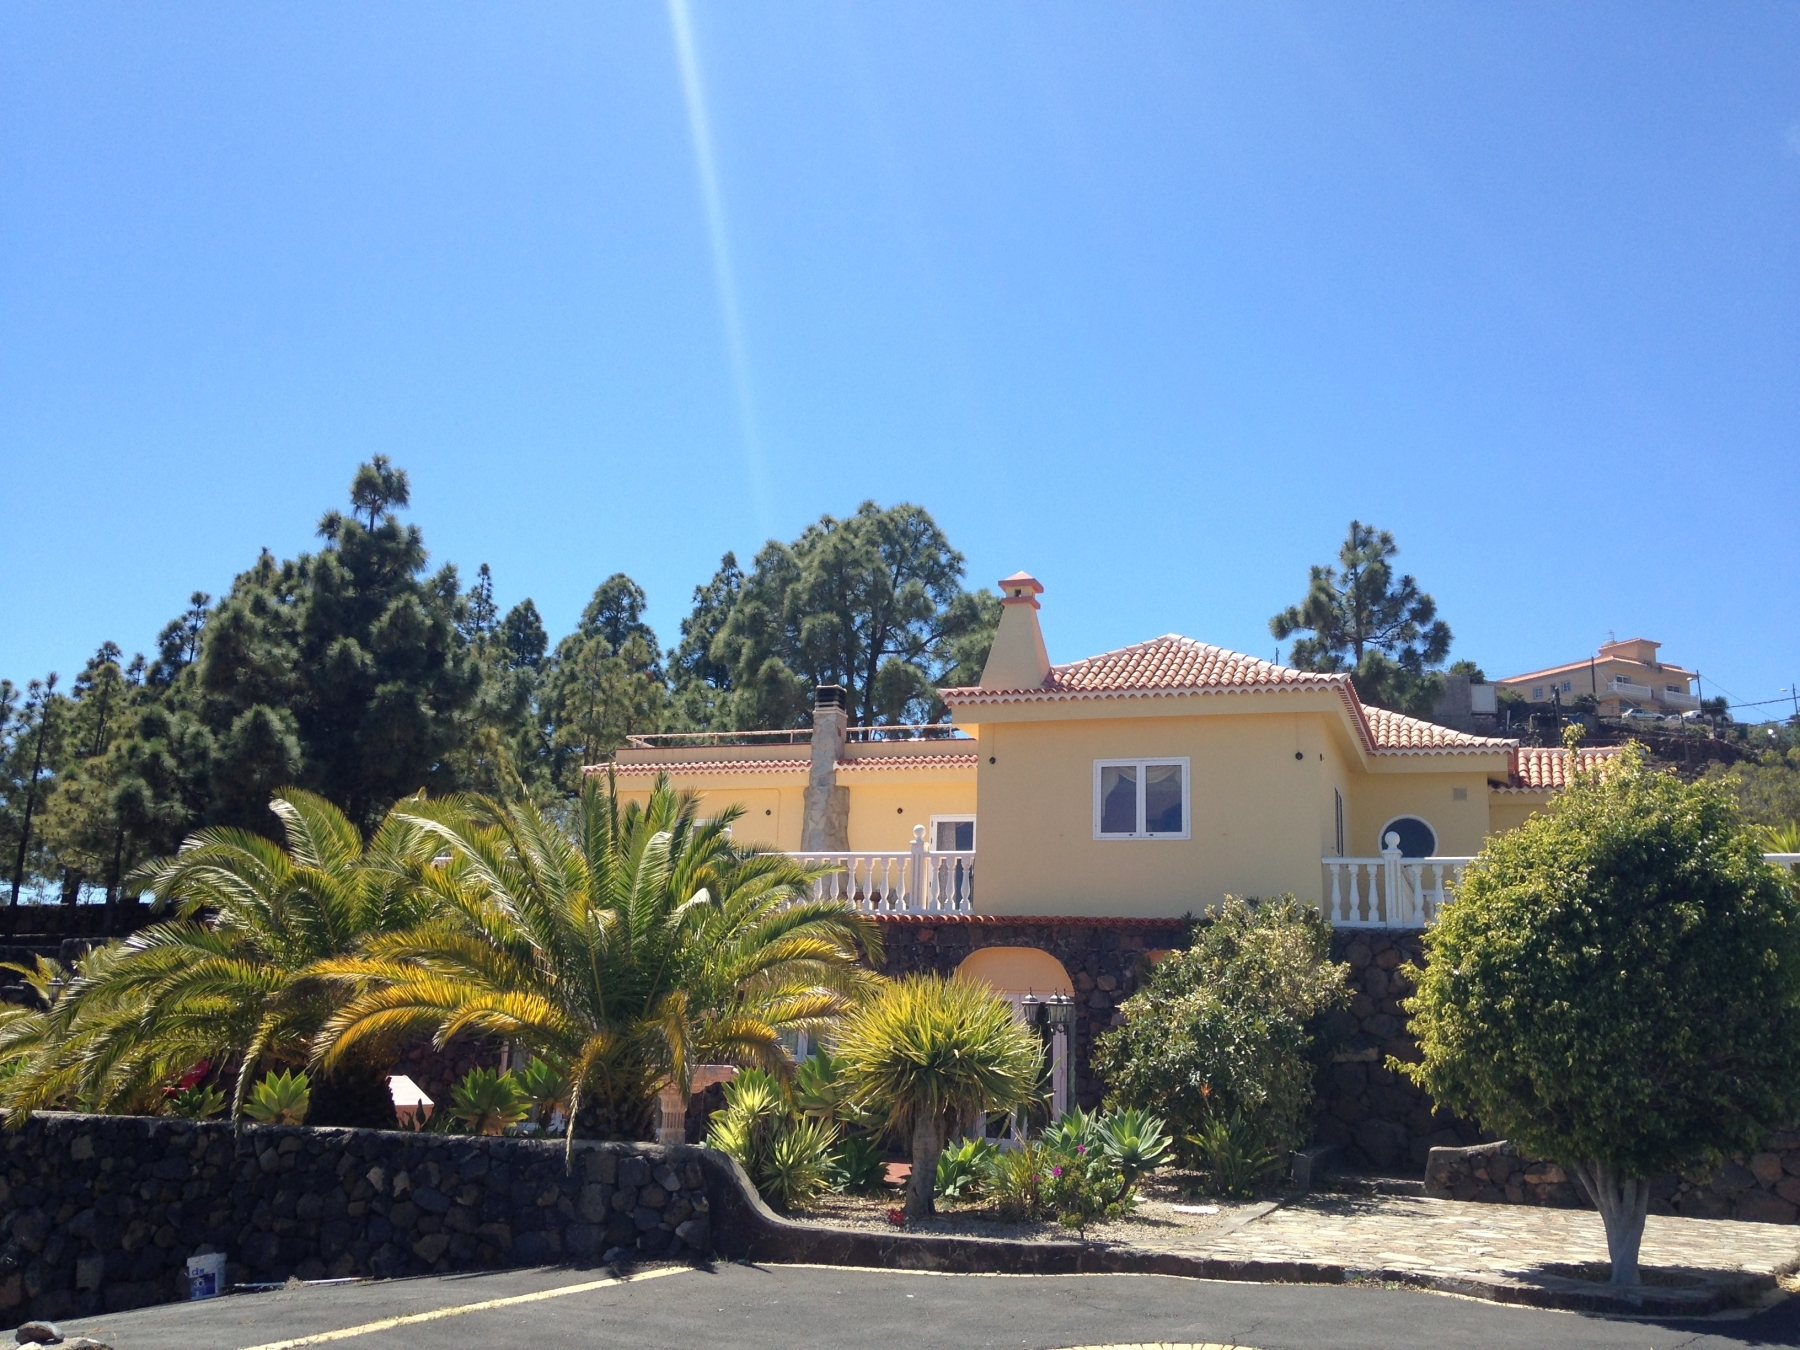 Properties for Sale in Tenerife, Canary Islands, Spain | SylkWayStar Real Estate. Finca with vineyard - Cruz de Tea - Granadilla de Abona . Image-21835